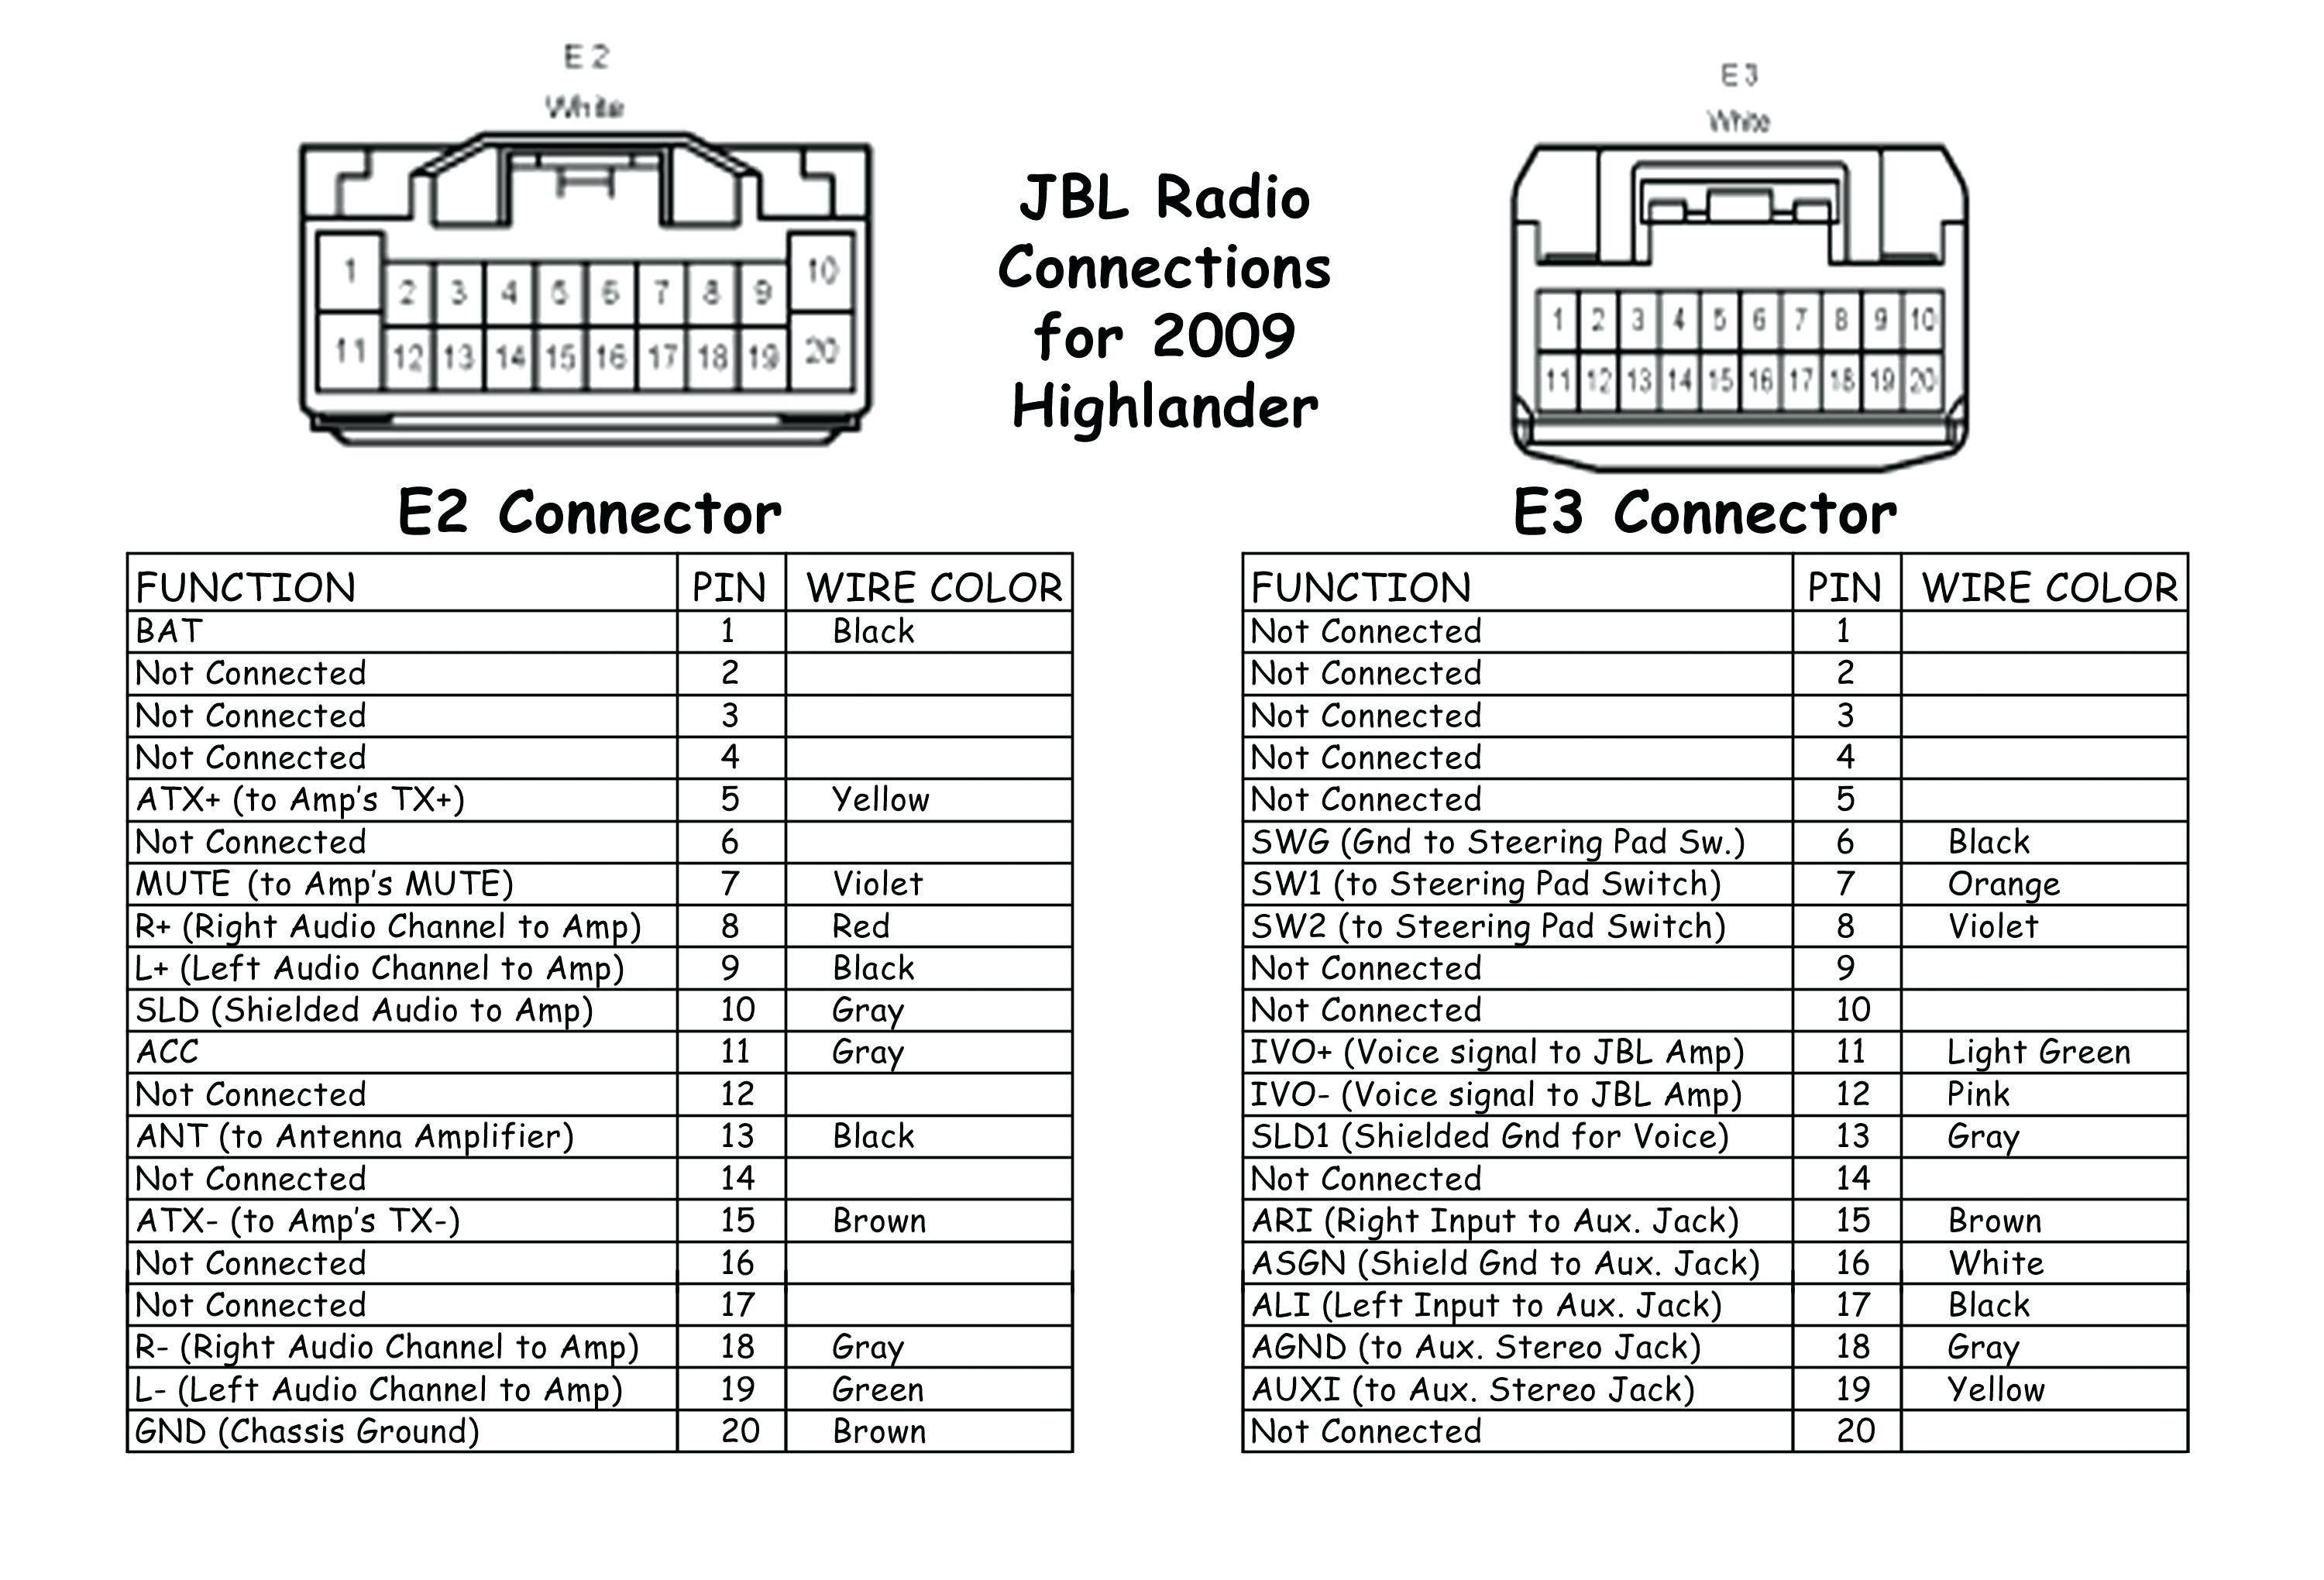 Wiring Diagram For 1996 Ford Explorer - Wiring Diagram M2 on